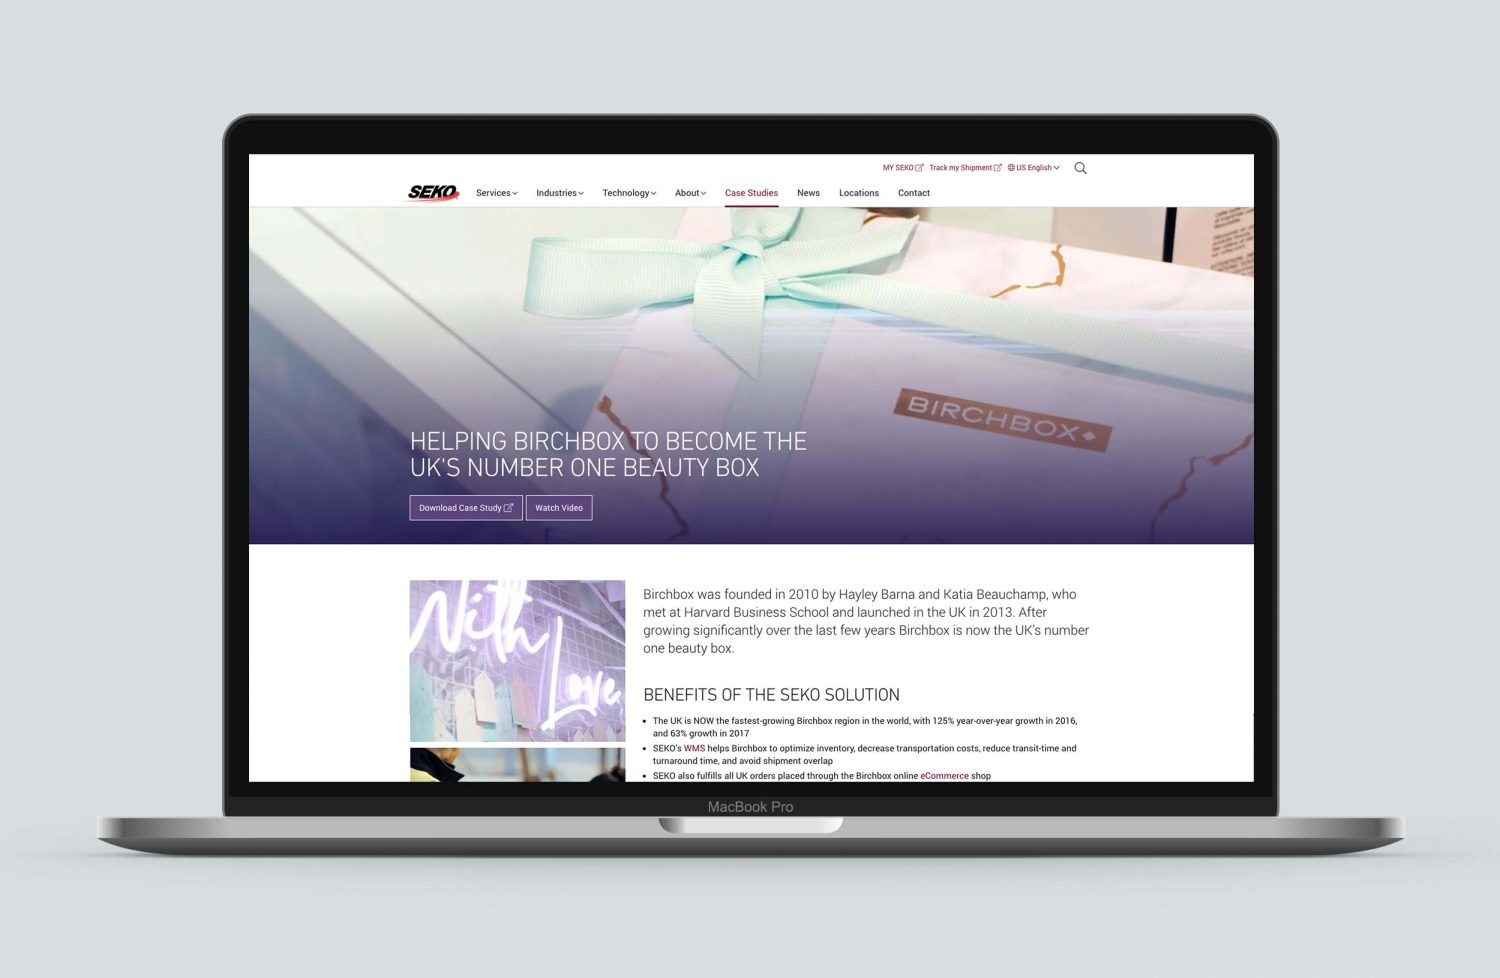 SEKO Birchbox case study - website view